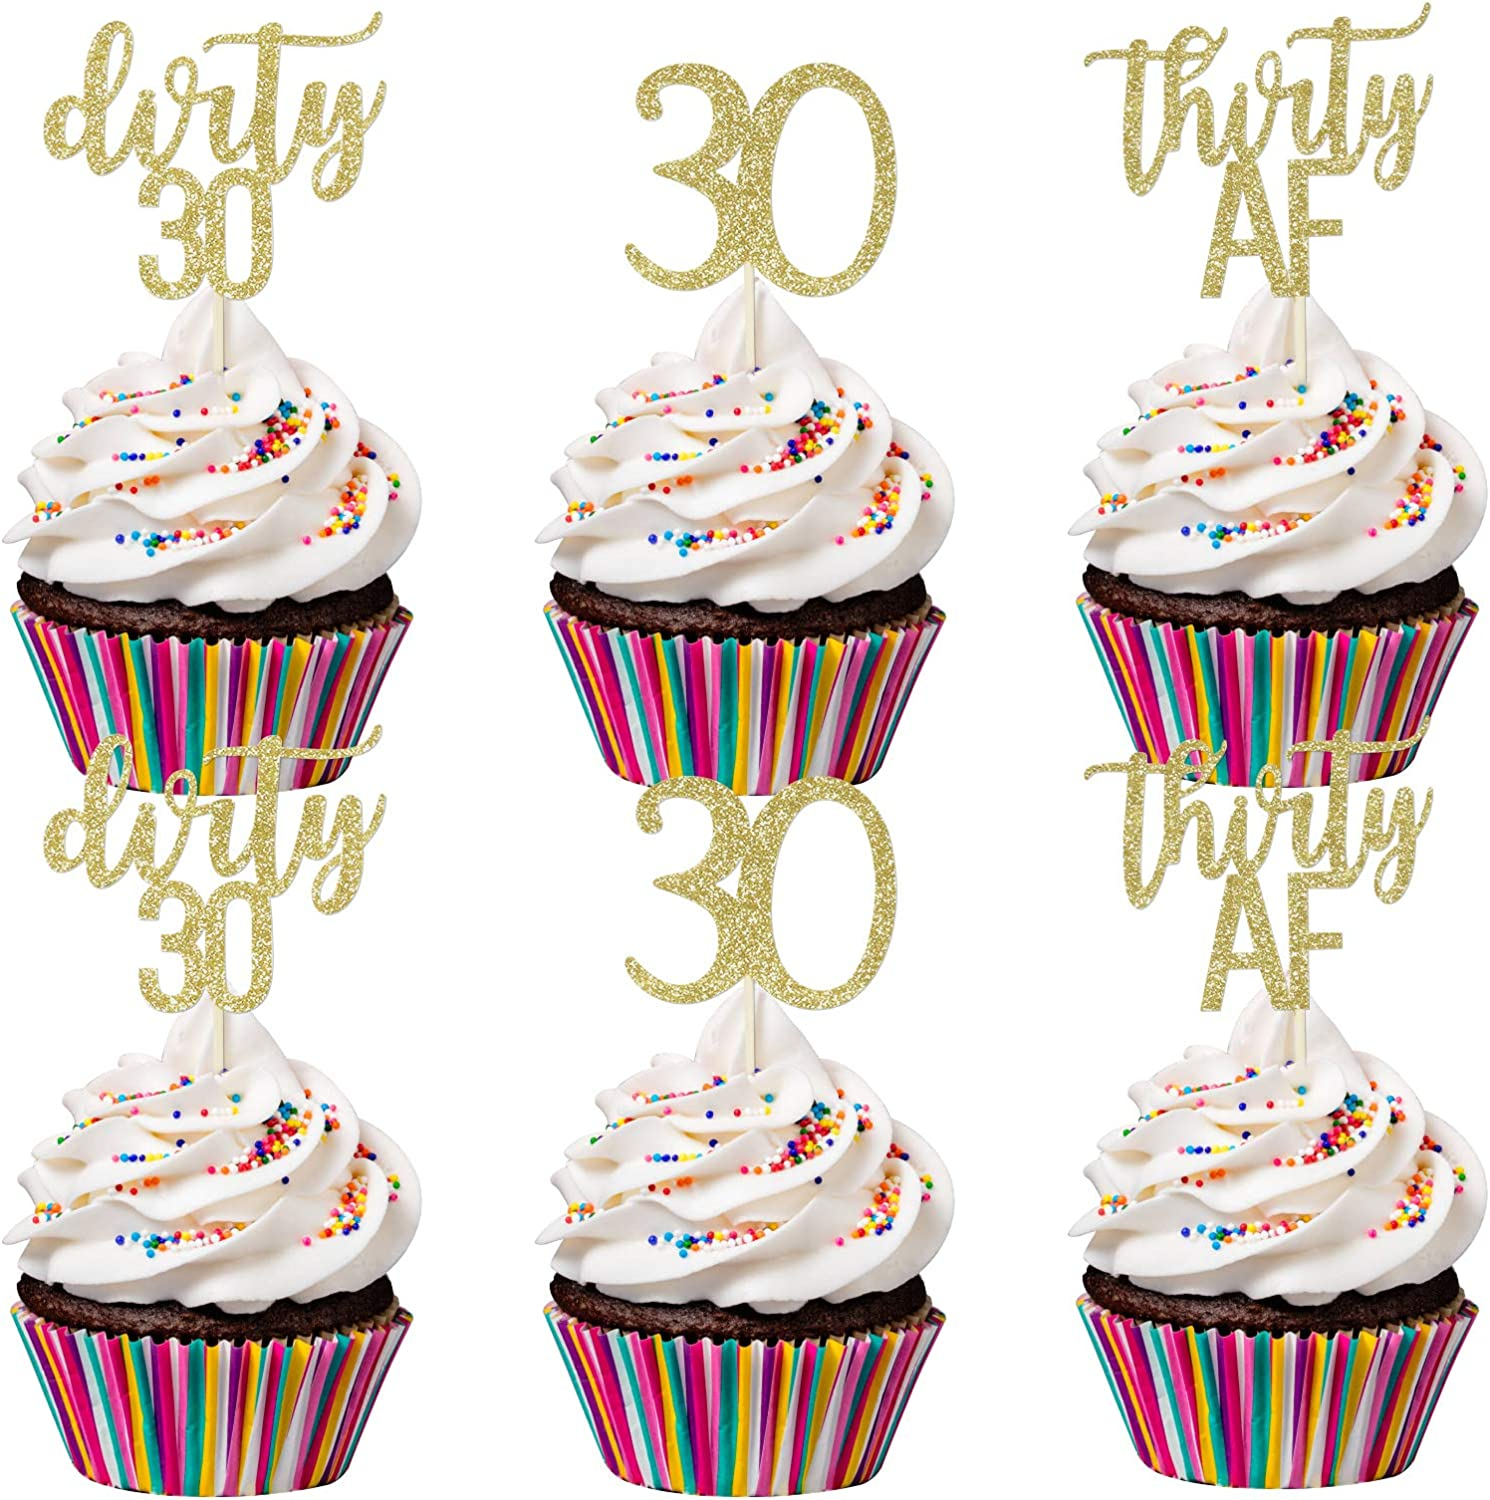 24Pcs Gold Glittery Thirty Af 30 Dirty 30 Cupcake Toppers- 30th Birthday Cupcake Toppers,Dirty 30 Cupcake Toppers,30th Anniversary Decor,Dirty Cupcake Toppers,30th Birthday Decorations